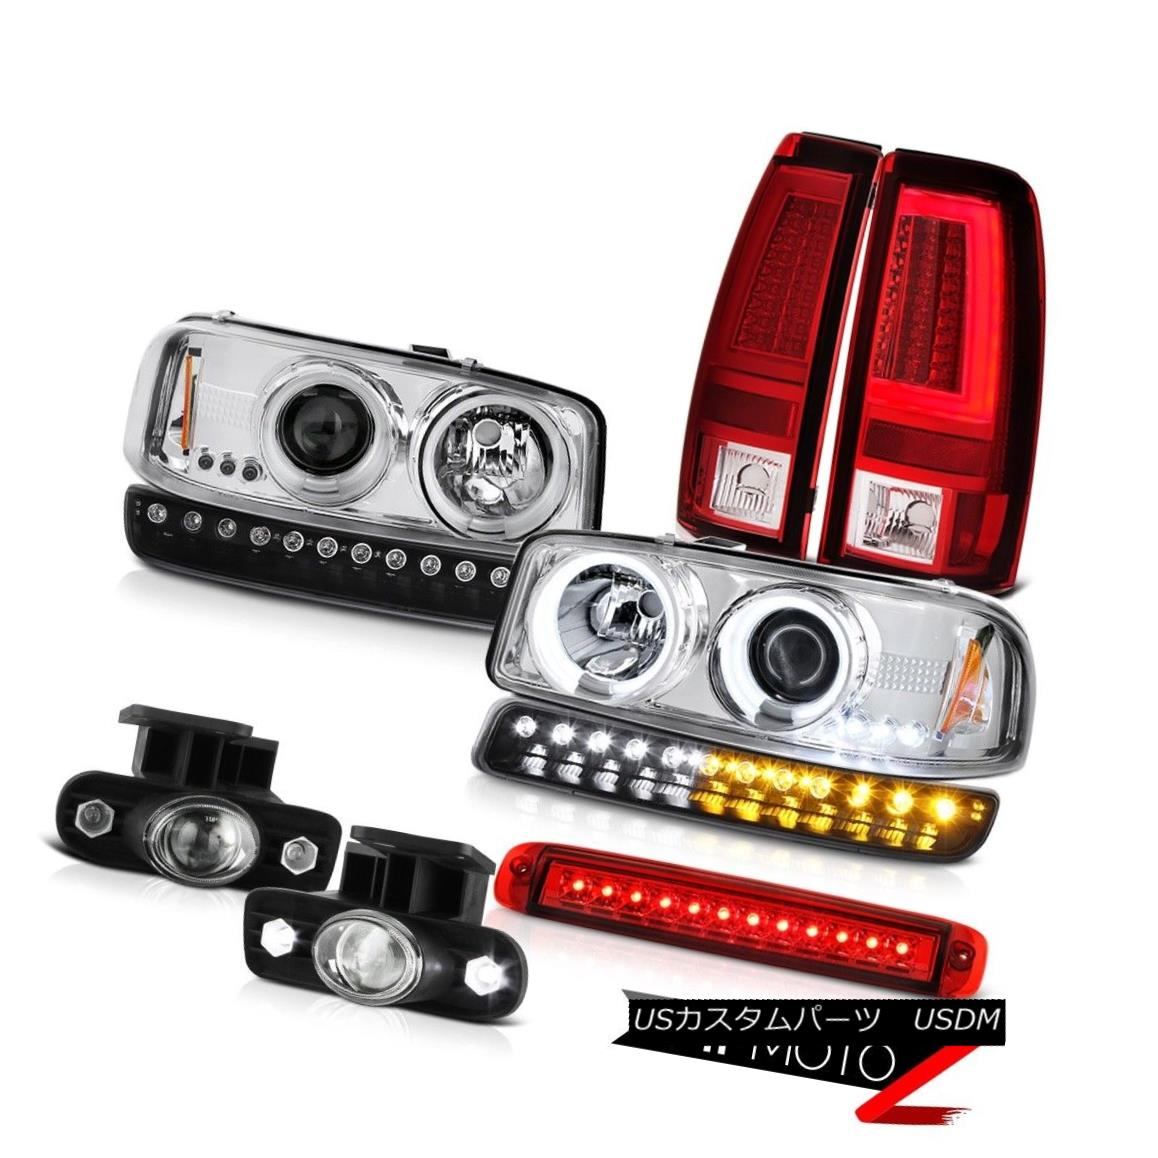 ヘッドライト 1999-2002 Sierra 6.0L Taillamps 3RD Brake Lamp Bumper Fog Lights CCFL Headlights 1999-2002 Sierra 6.0L Taillamps 3RDブレーキランプバンパーフォグライトCCFLヘッドライト